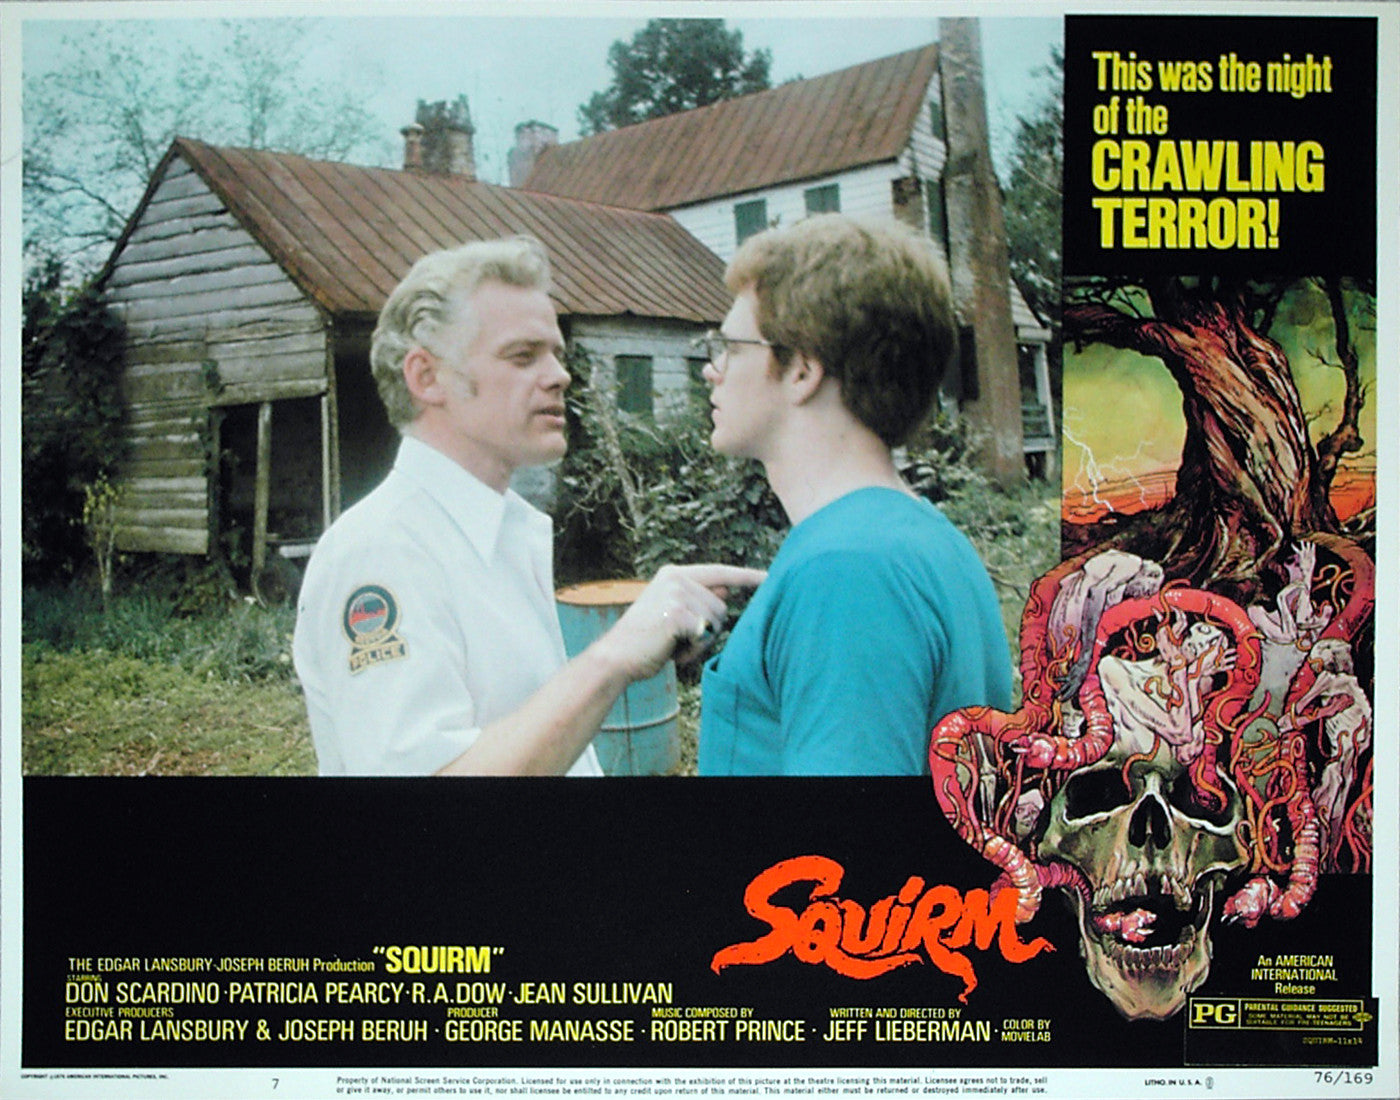 SQUIRM - US lobby card v7